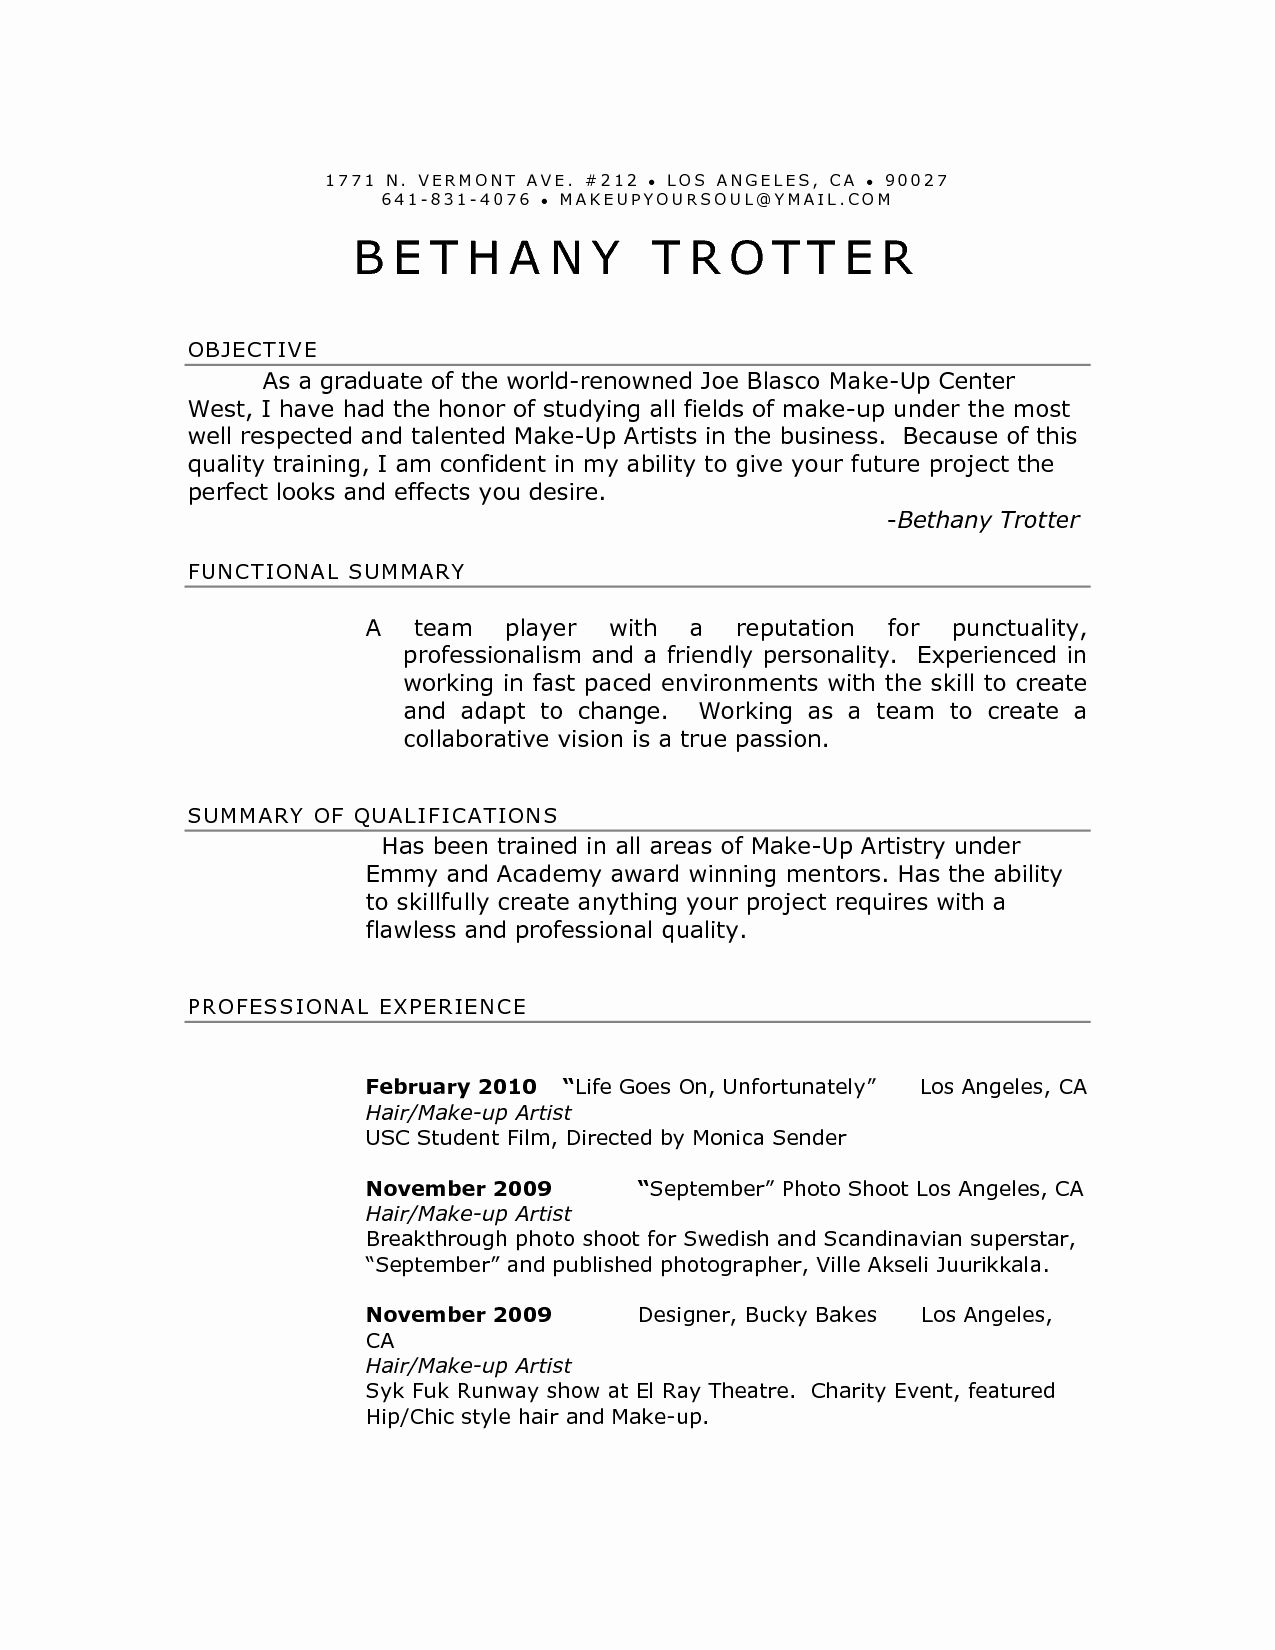 Make Up Artist Resume Beautiful Makeup Artist Resume